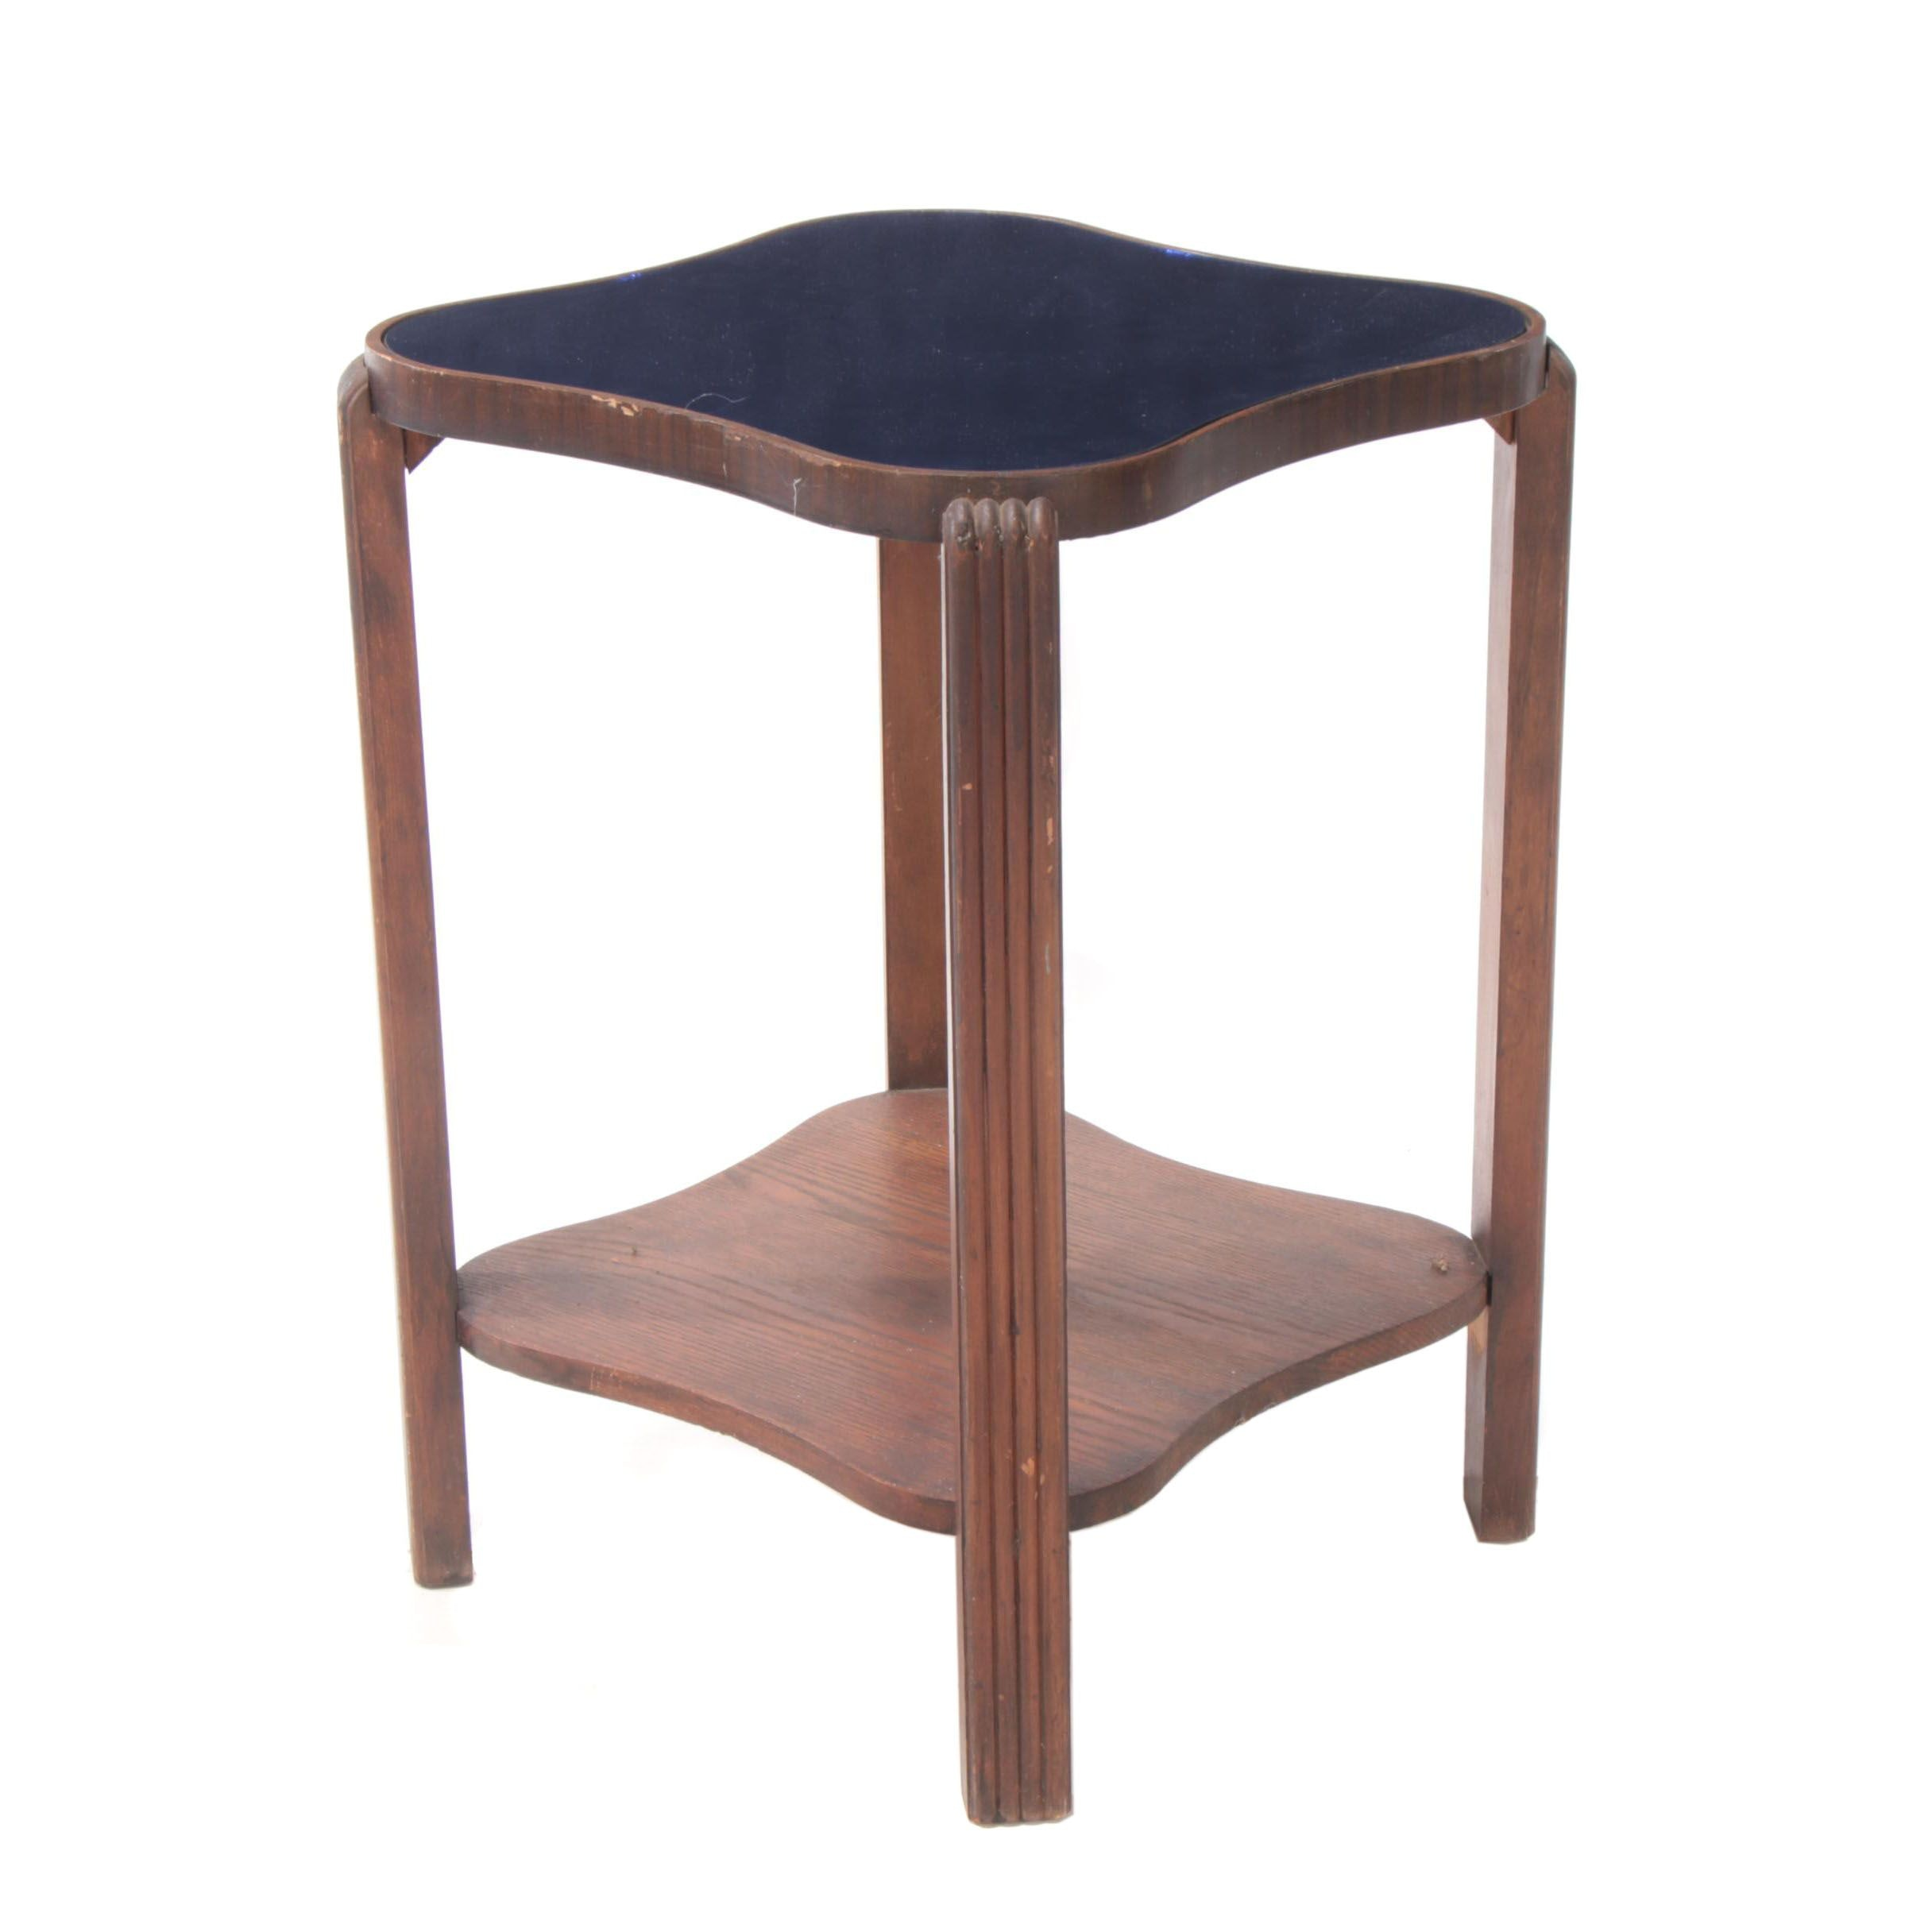 Walnut Stained End Table with Blue Mirrored Glass Top, Late 20th Century